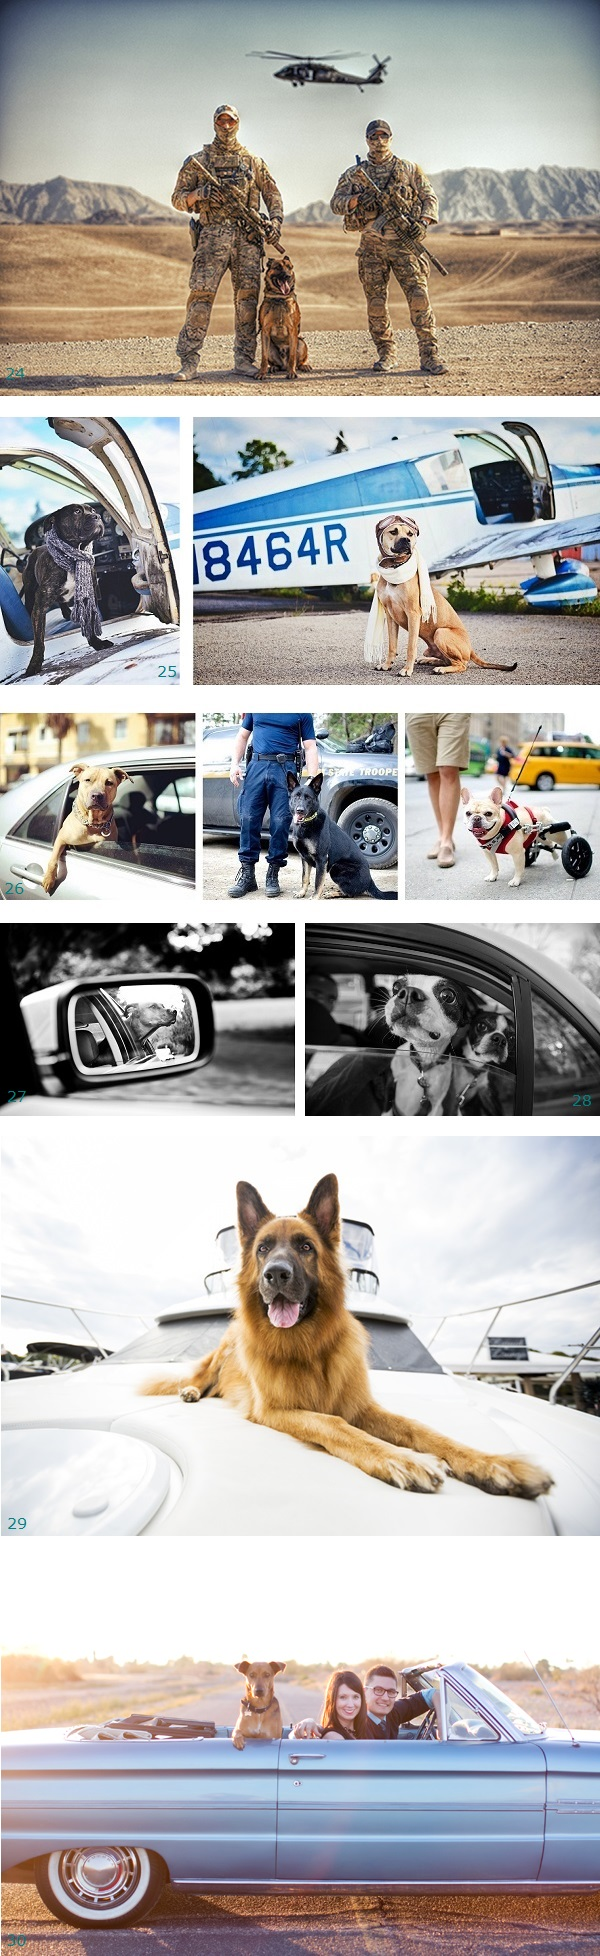 Best Ride: dogs and helicopter, dogs and small plane, dogs in cars, dog with wheels, dog on boat